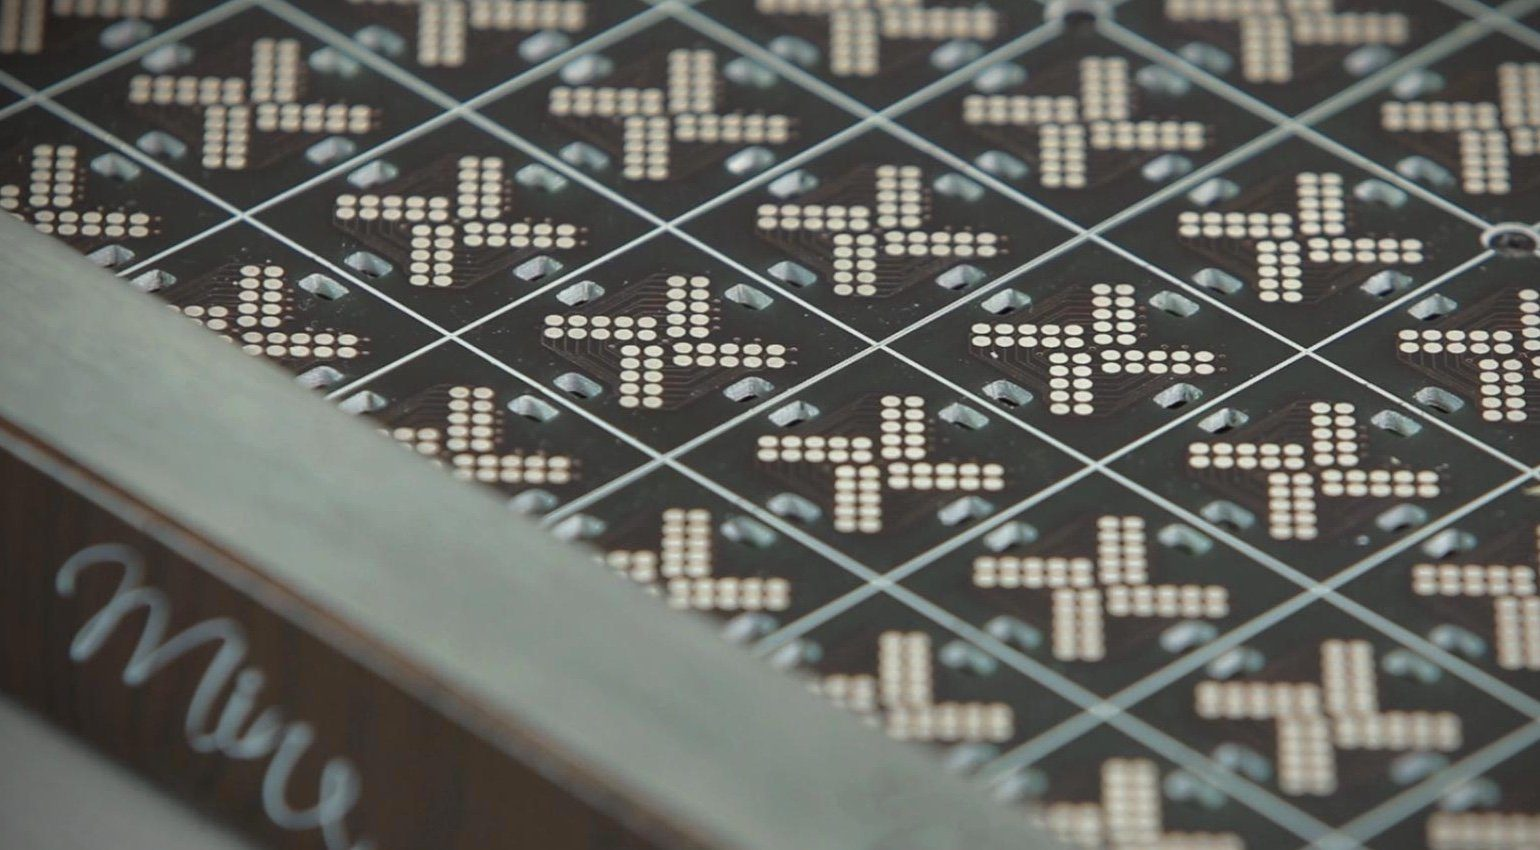 Special Waves Mine MIDI Controller PCB Close Up